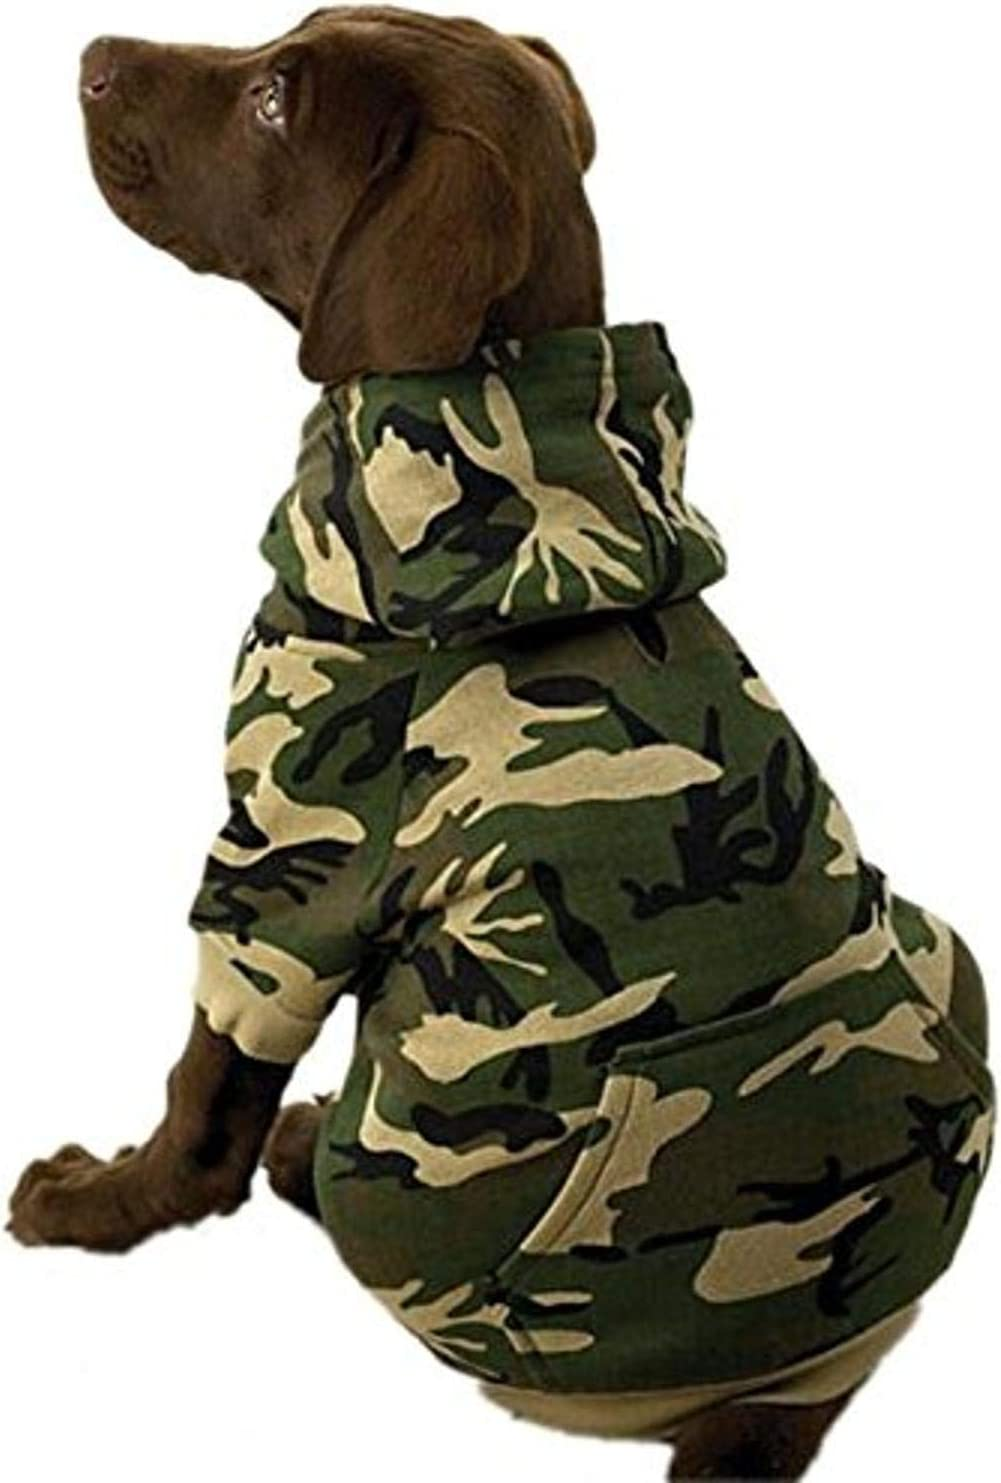 ! Super beauty product restock quality top! Oakland Mall Casual Canine Cotton Hoodie Dog Camo